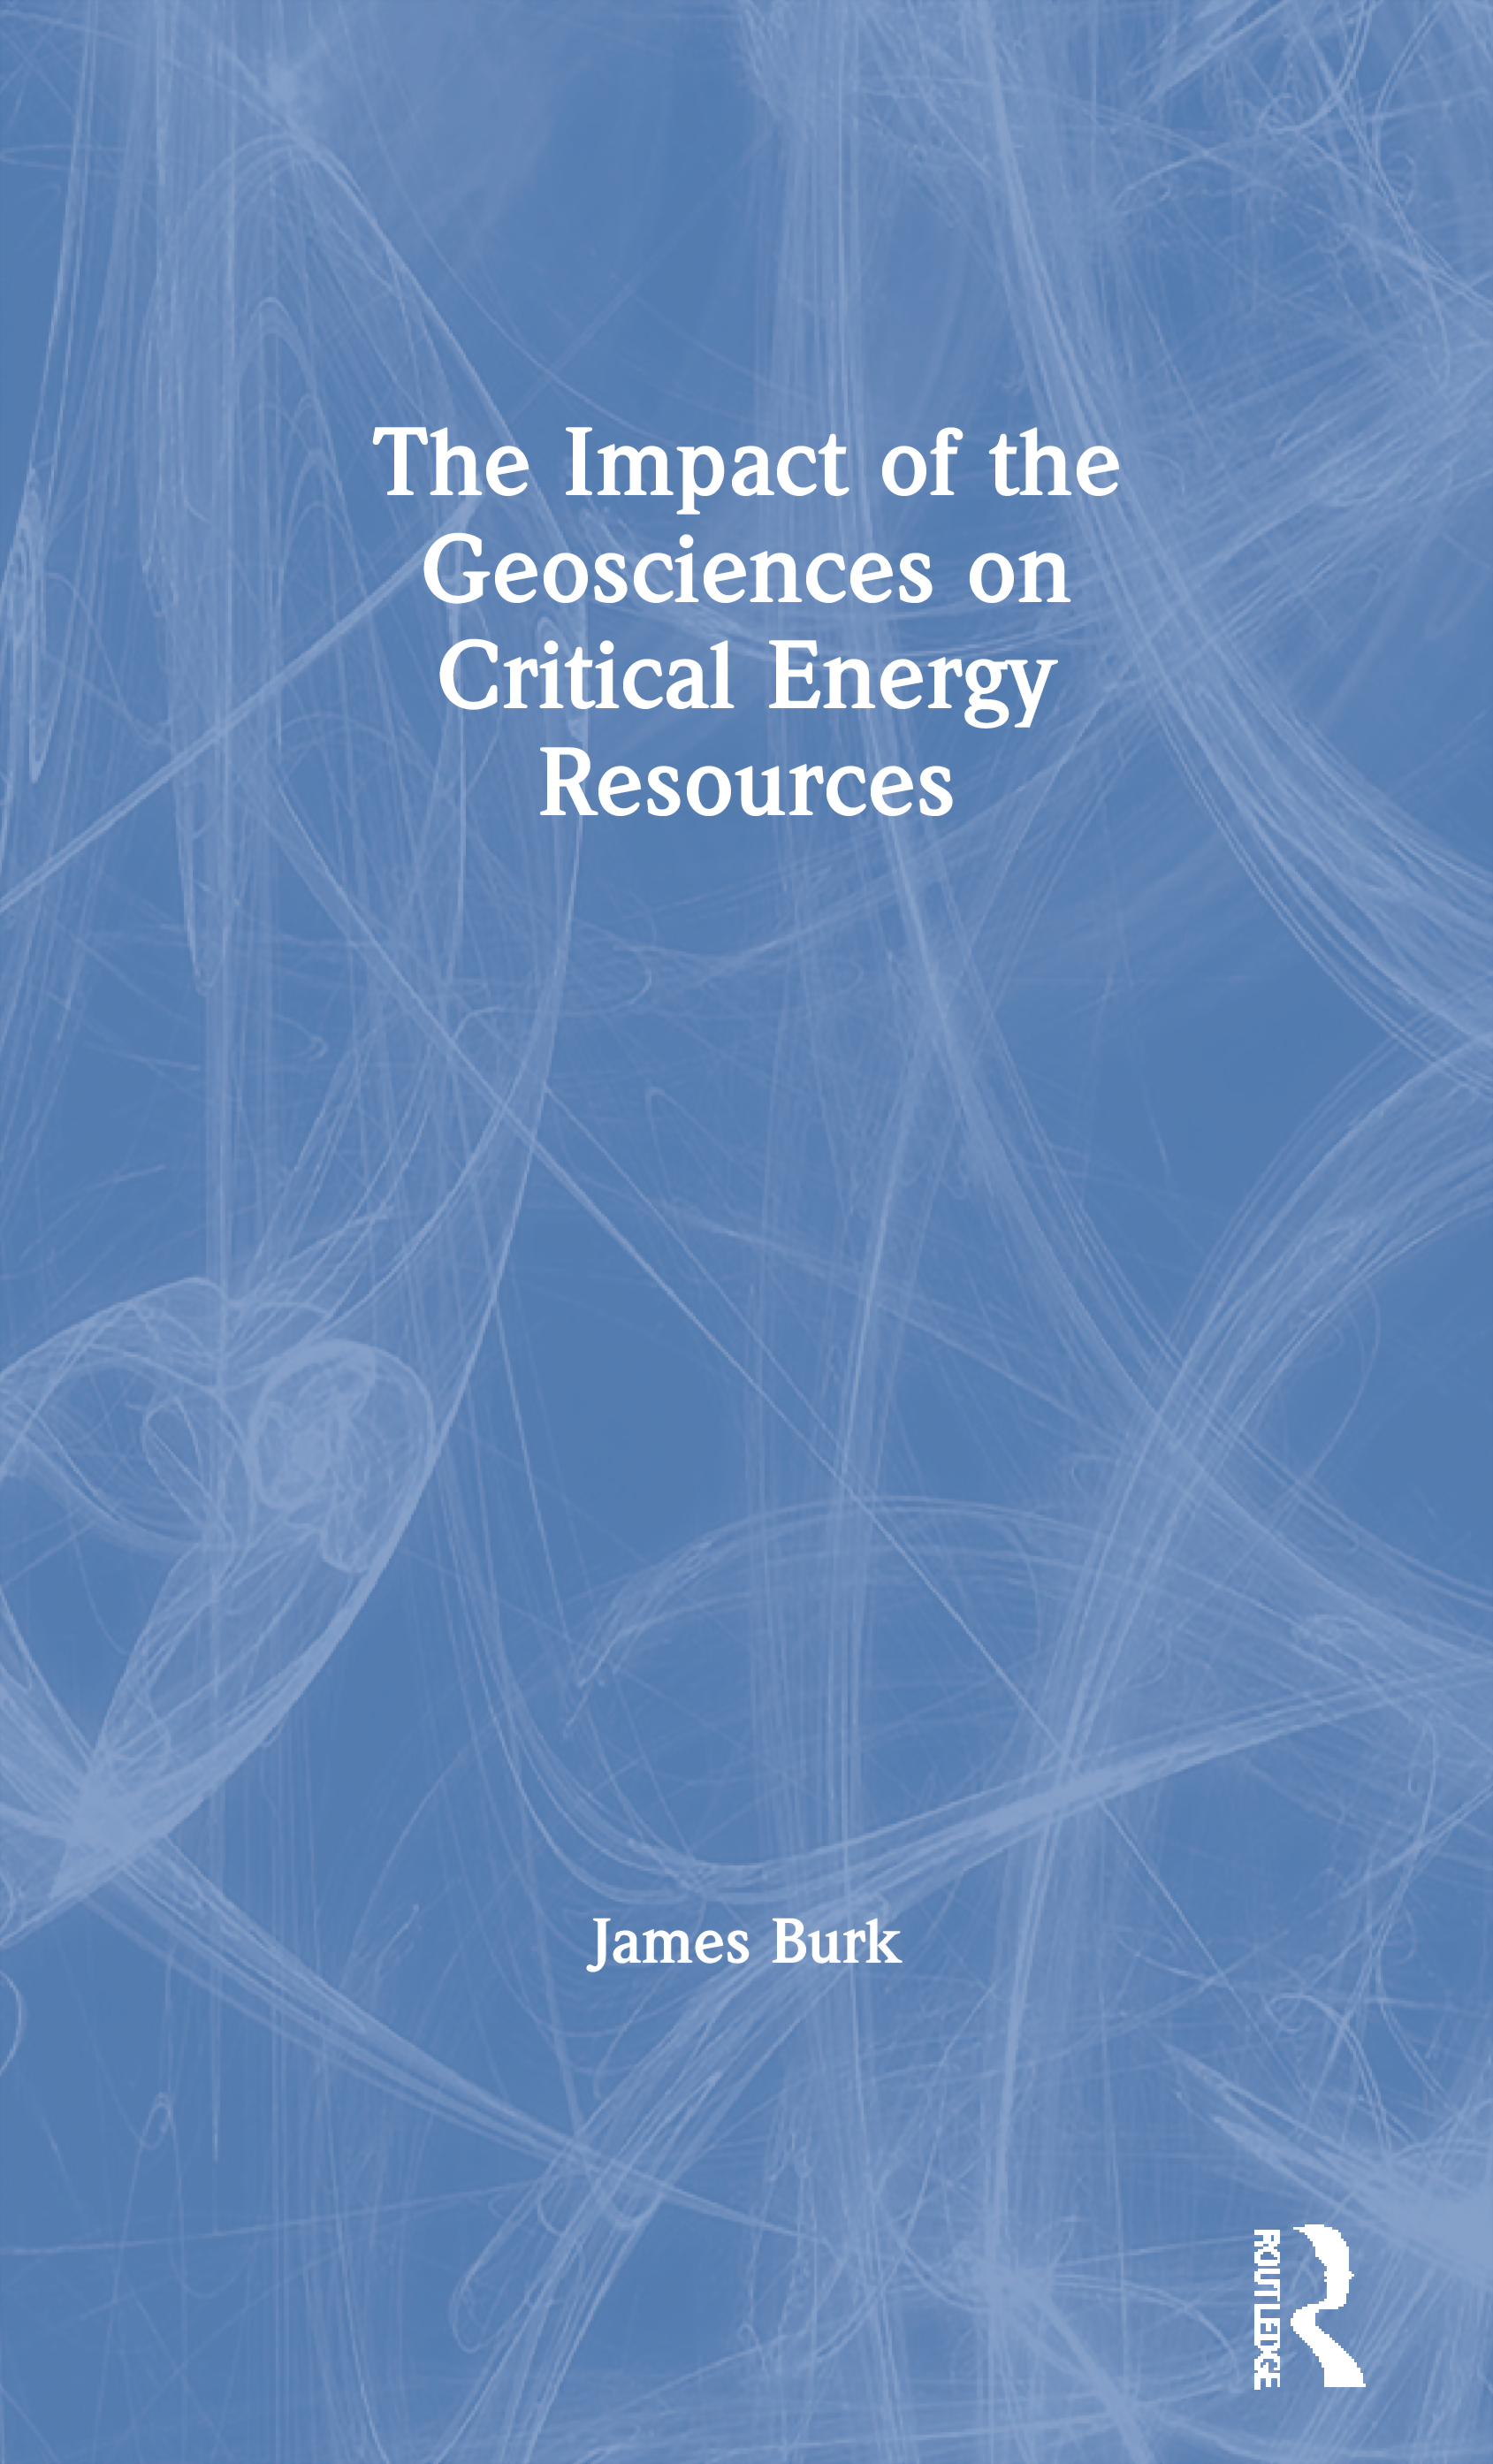 The Impact of the Geosciences on Critical Energy Resources